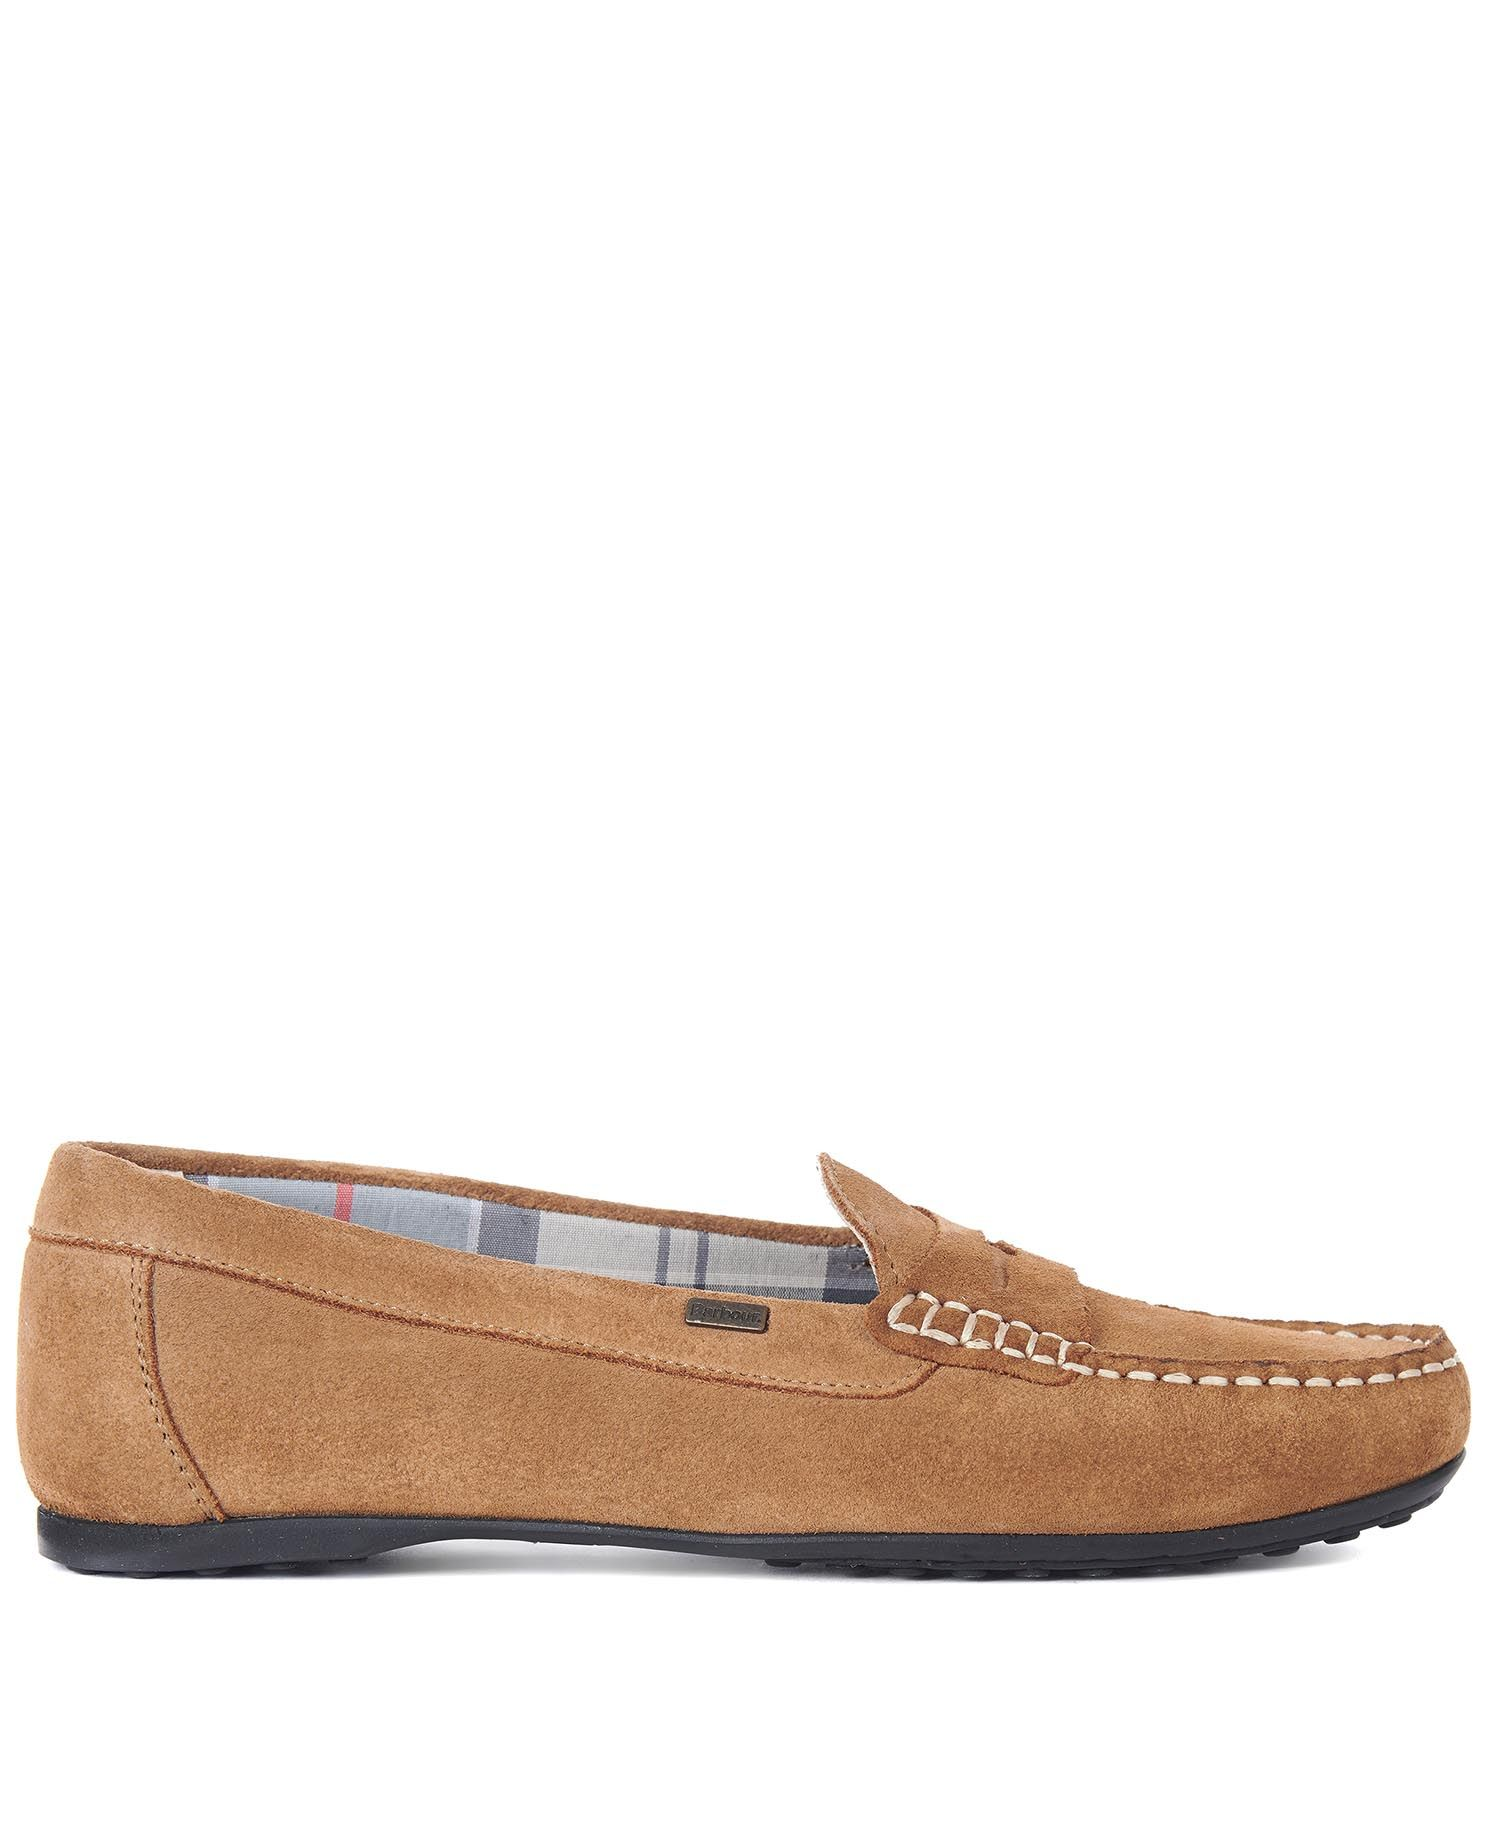 Barbour Barbour Renne Loafers Barbour Lifestyle